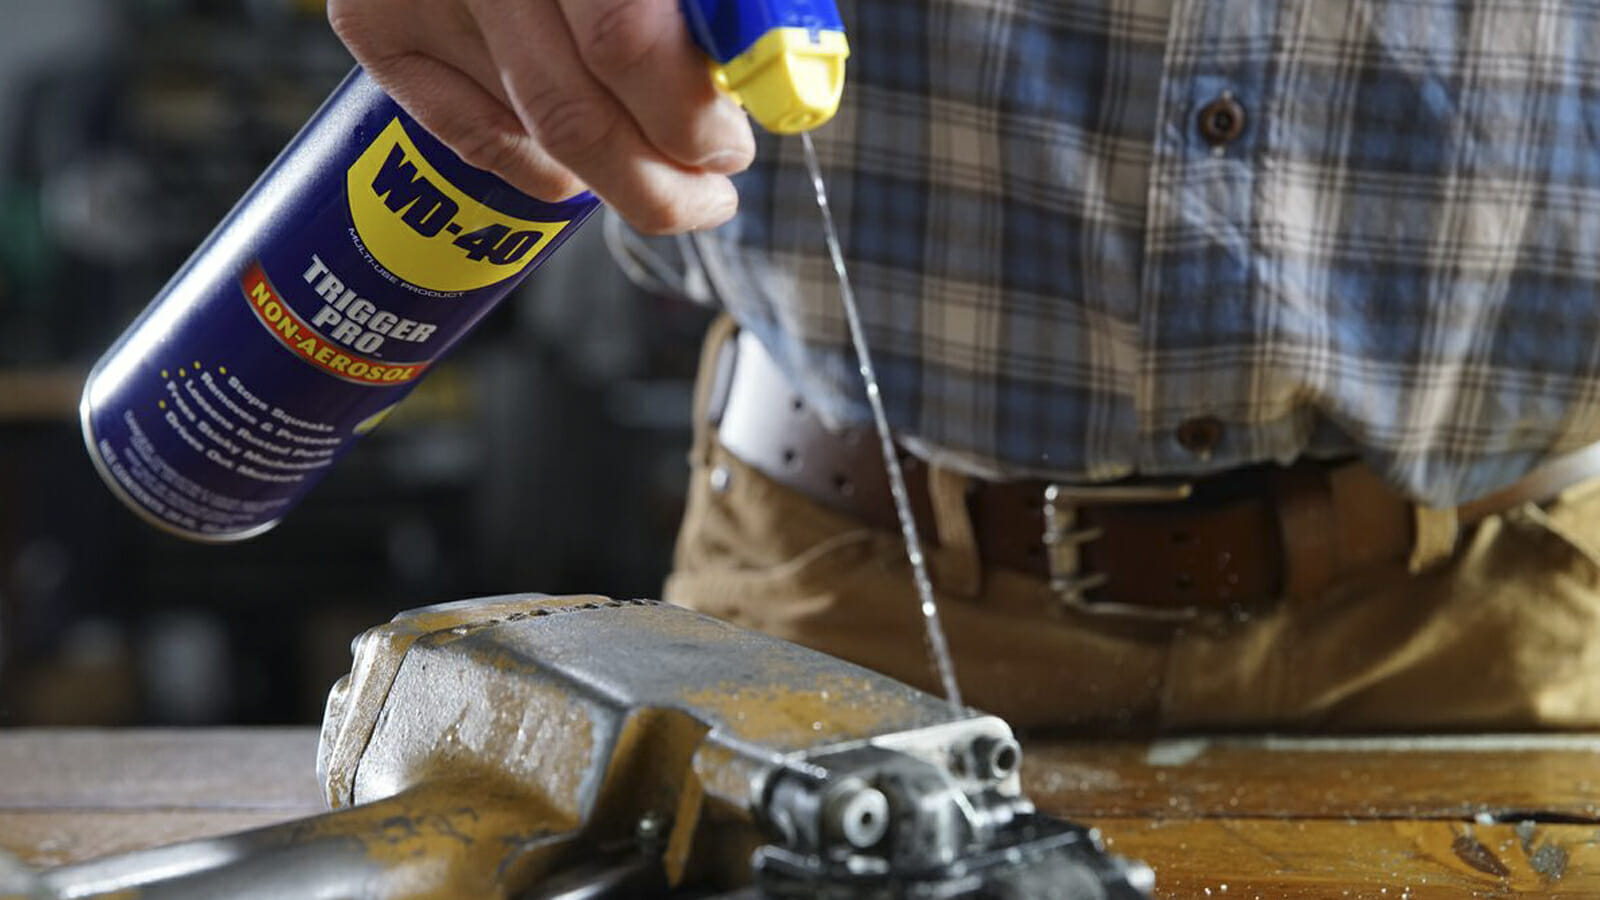 WD40-MUP